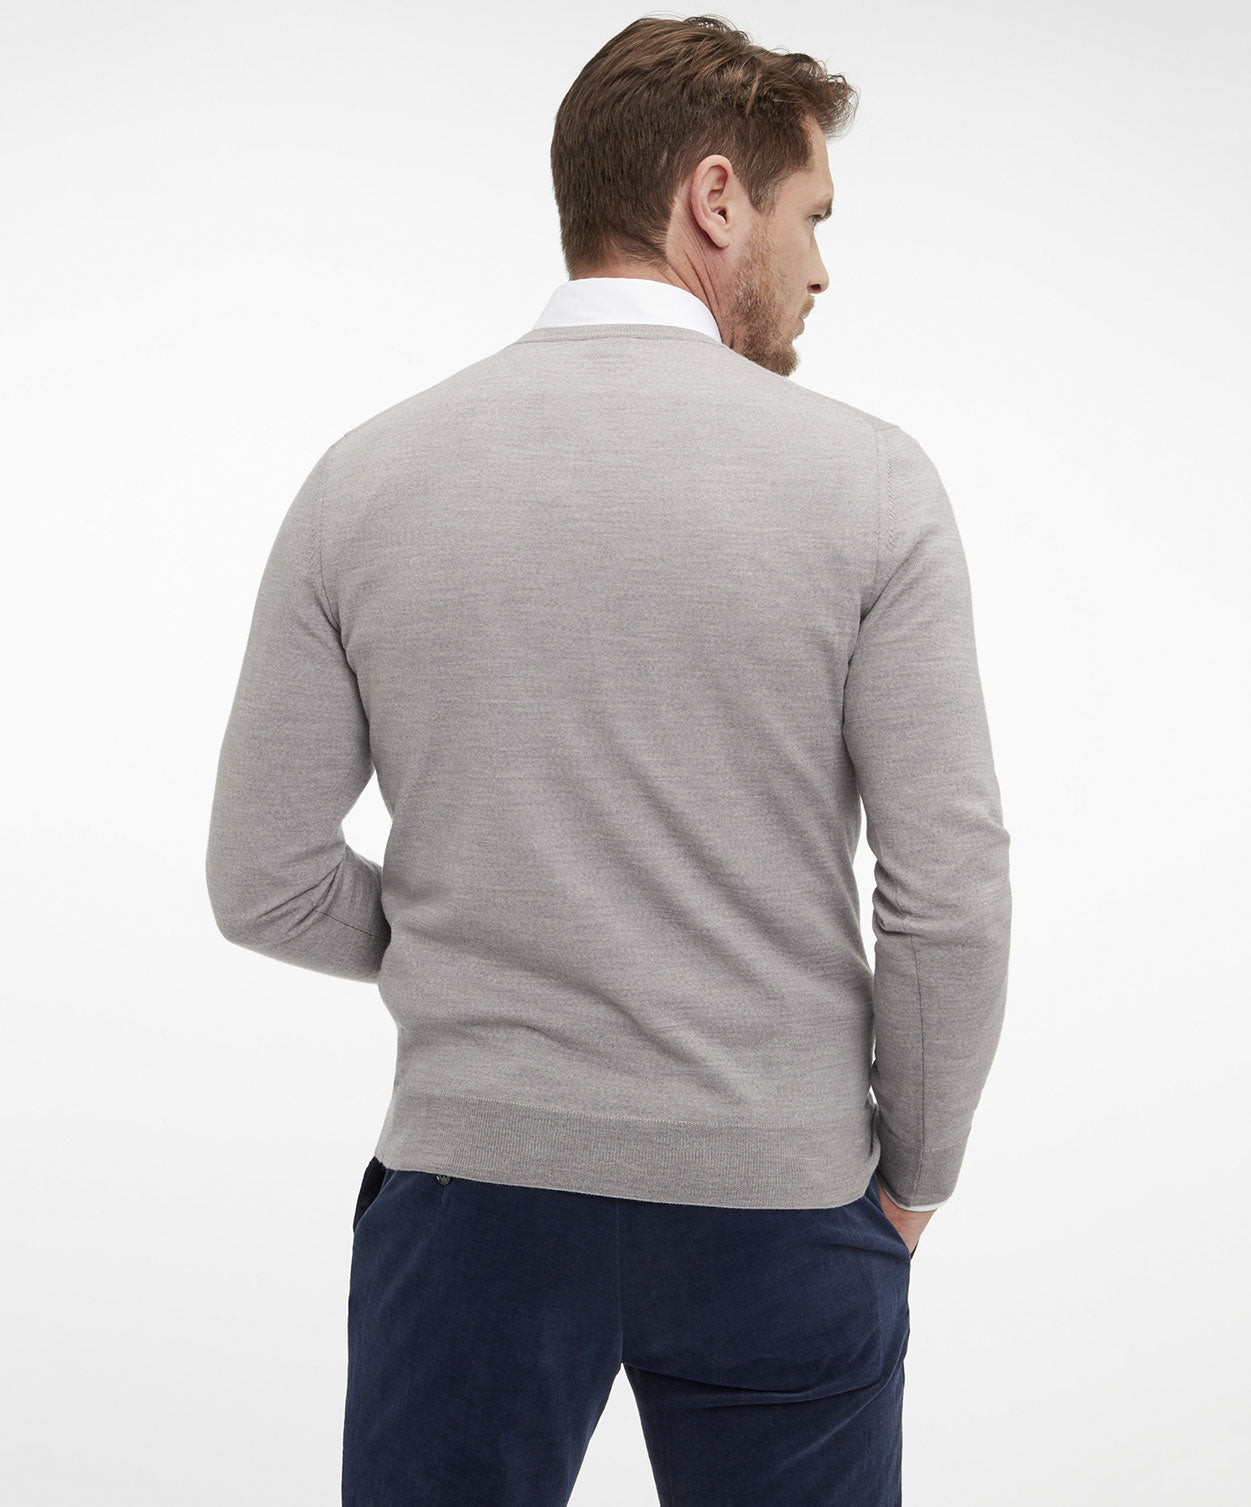 Gant Light Grey Sweater